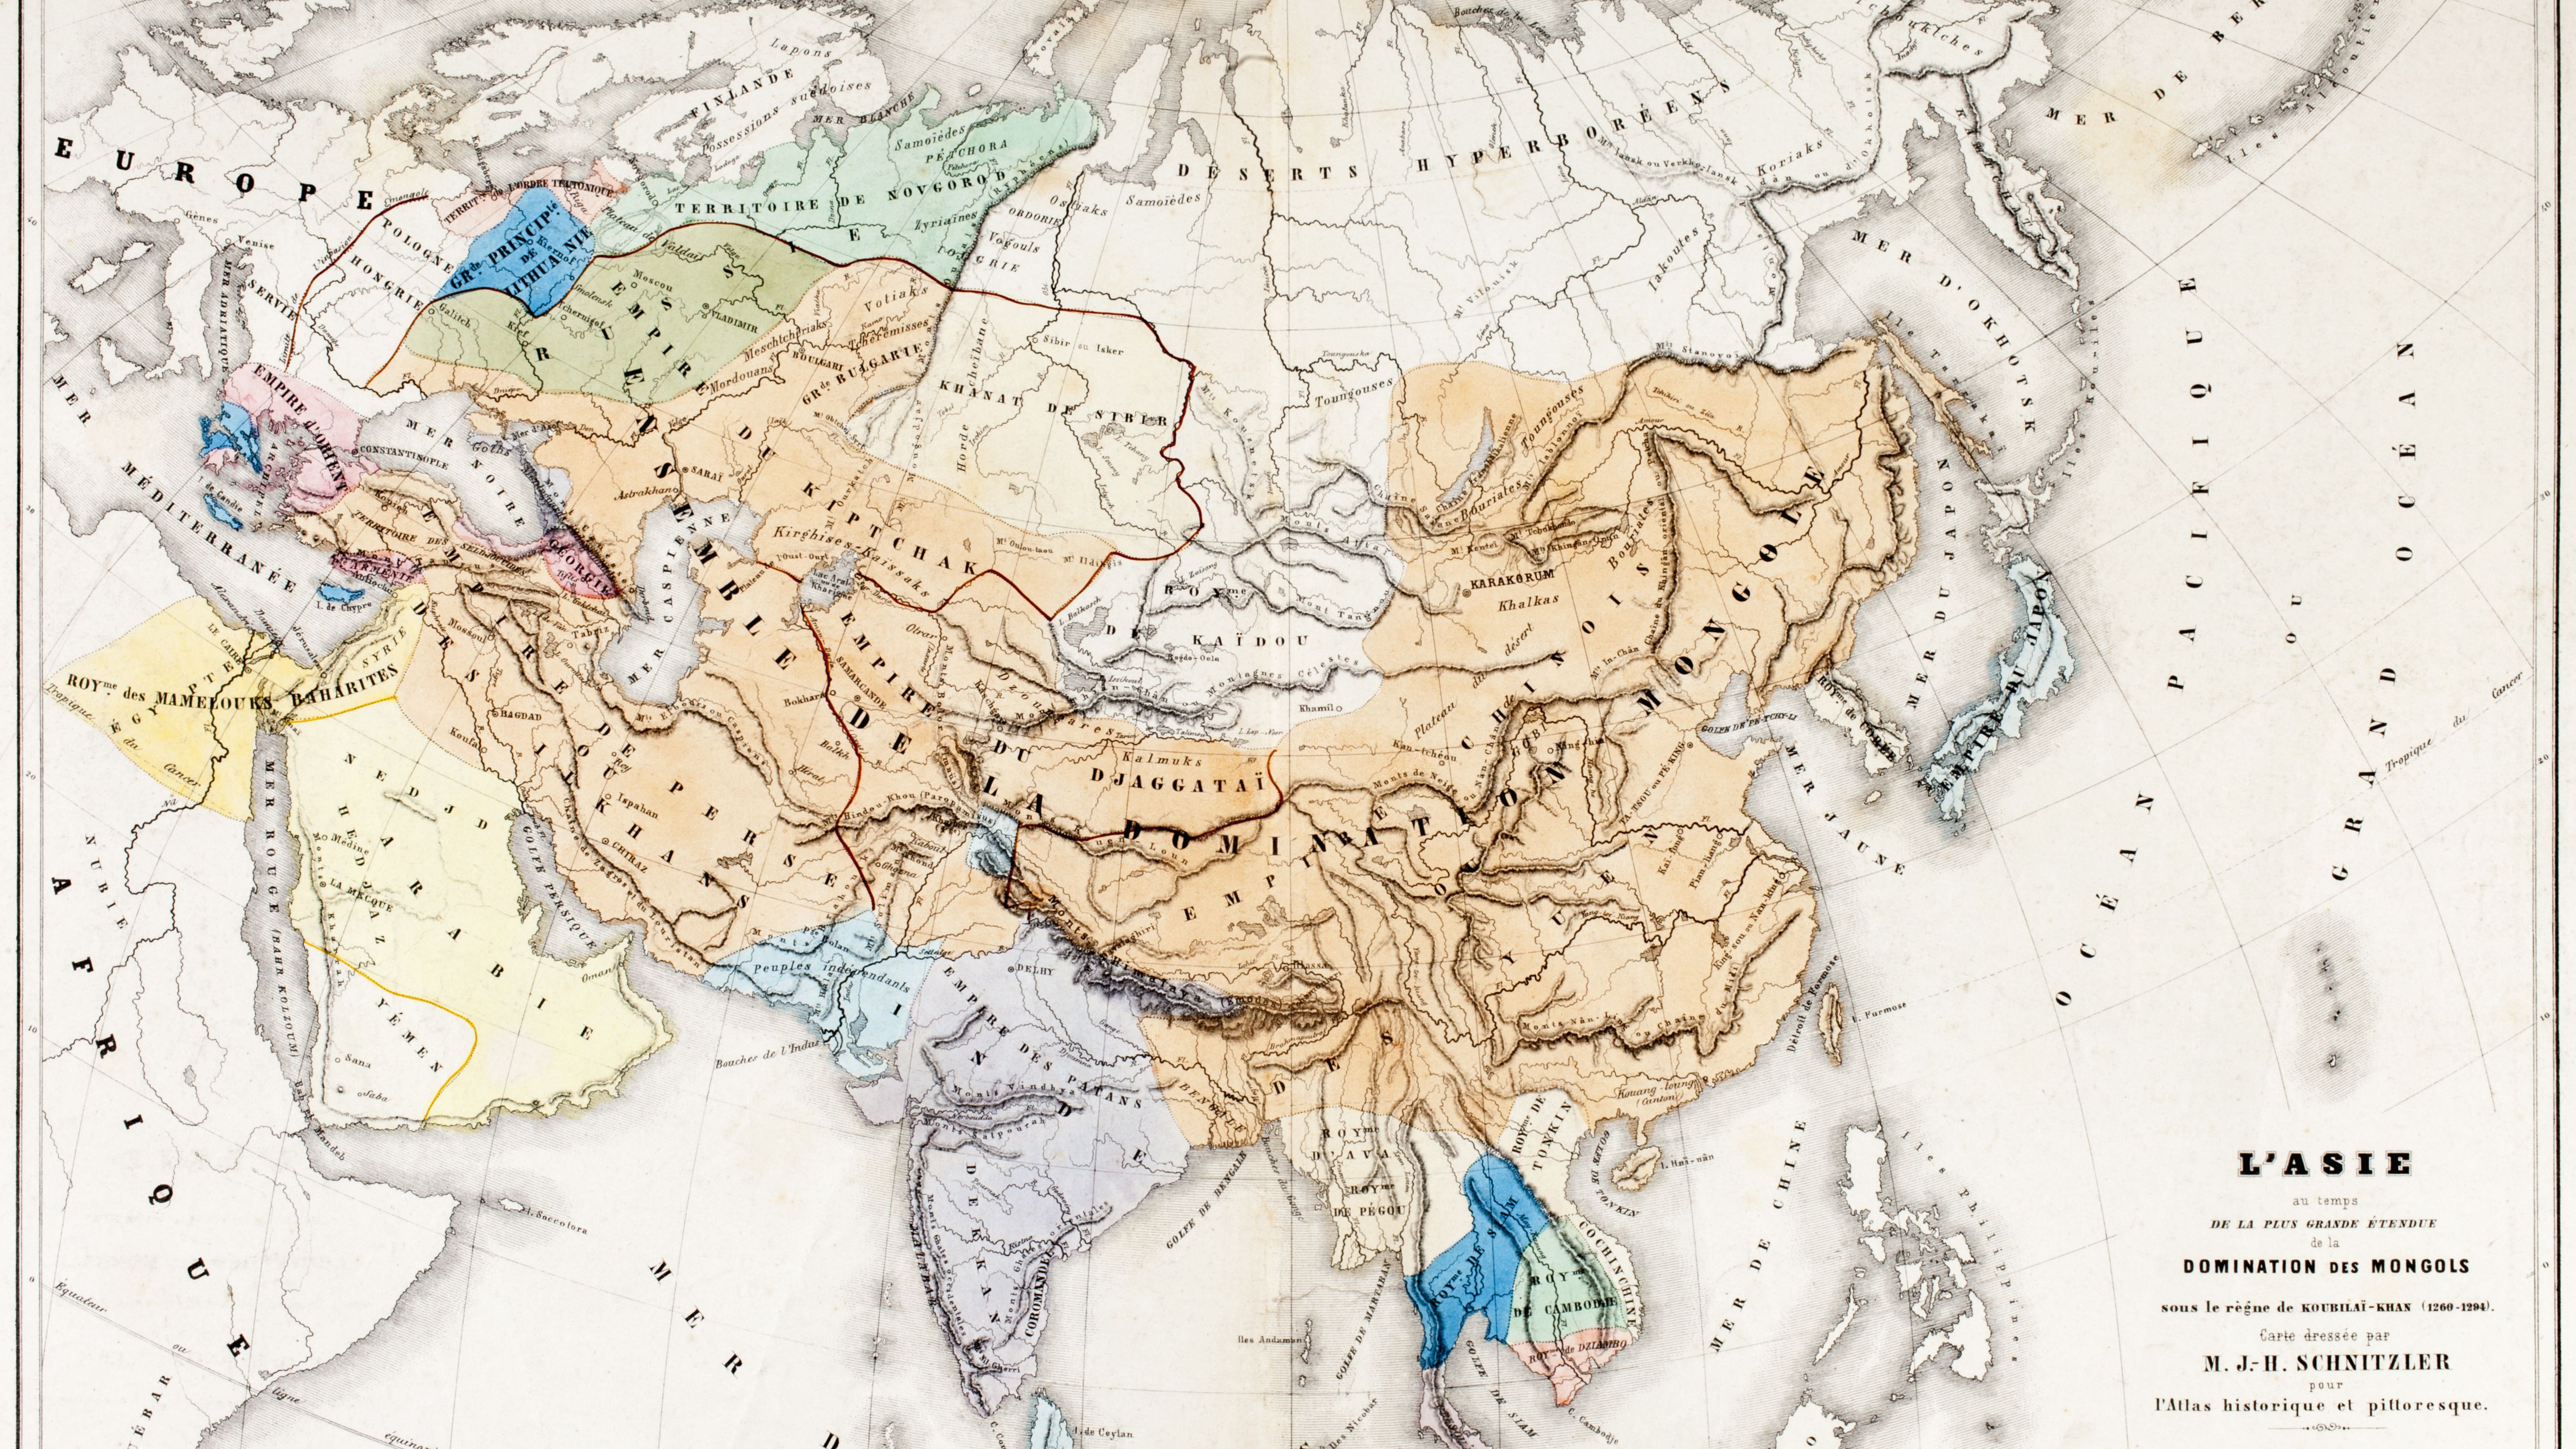 Genghis Khan and the Mongol Empire on